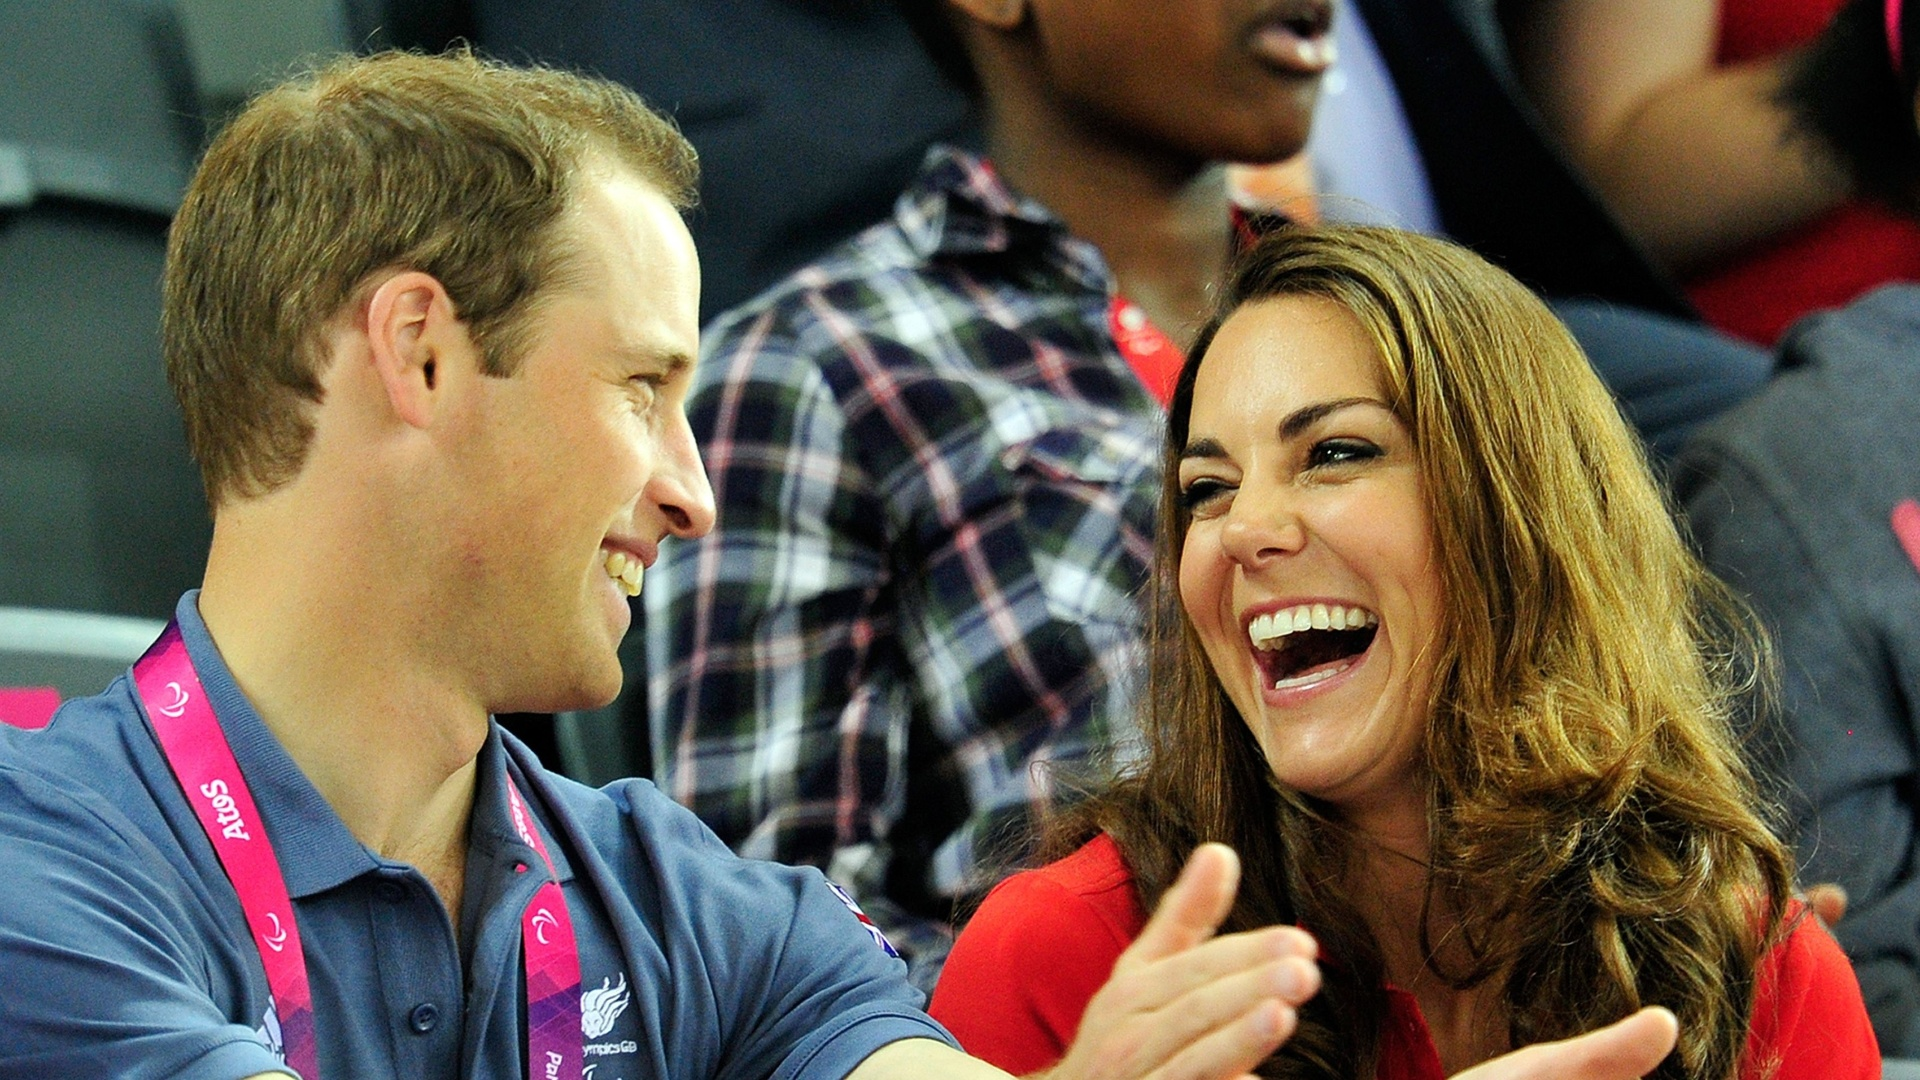 Príncipe William e a duquesa de Cambridge Kate Middleton se divertem durante a competição do ciclismo dos Jogos Paraolímpicos de Londres